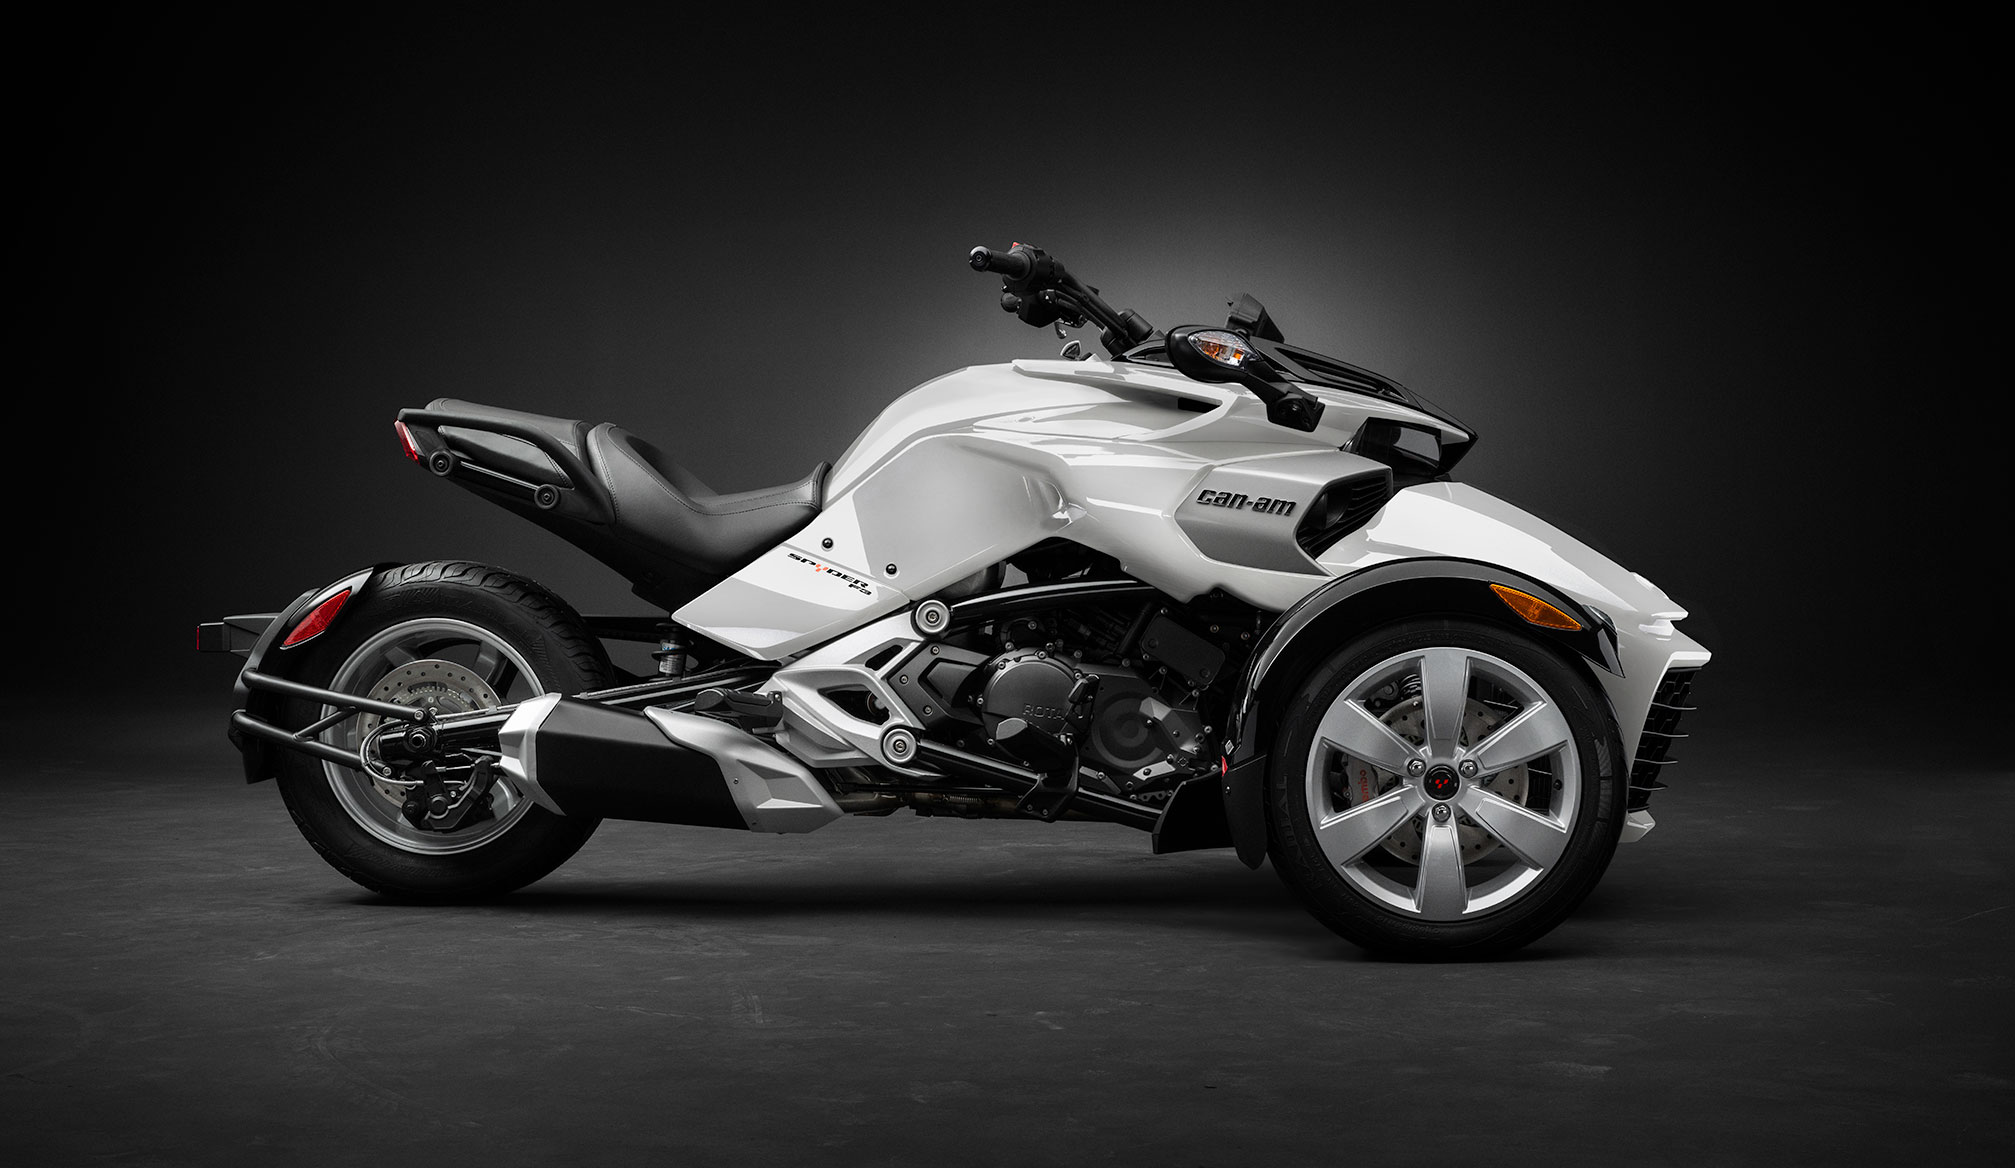 2015 can am spyder f3 review for Can am spyder motor